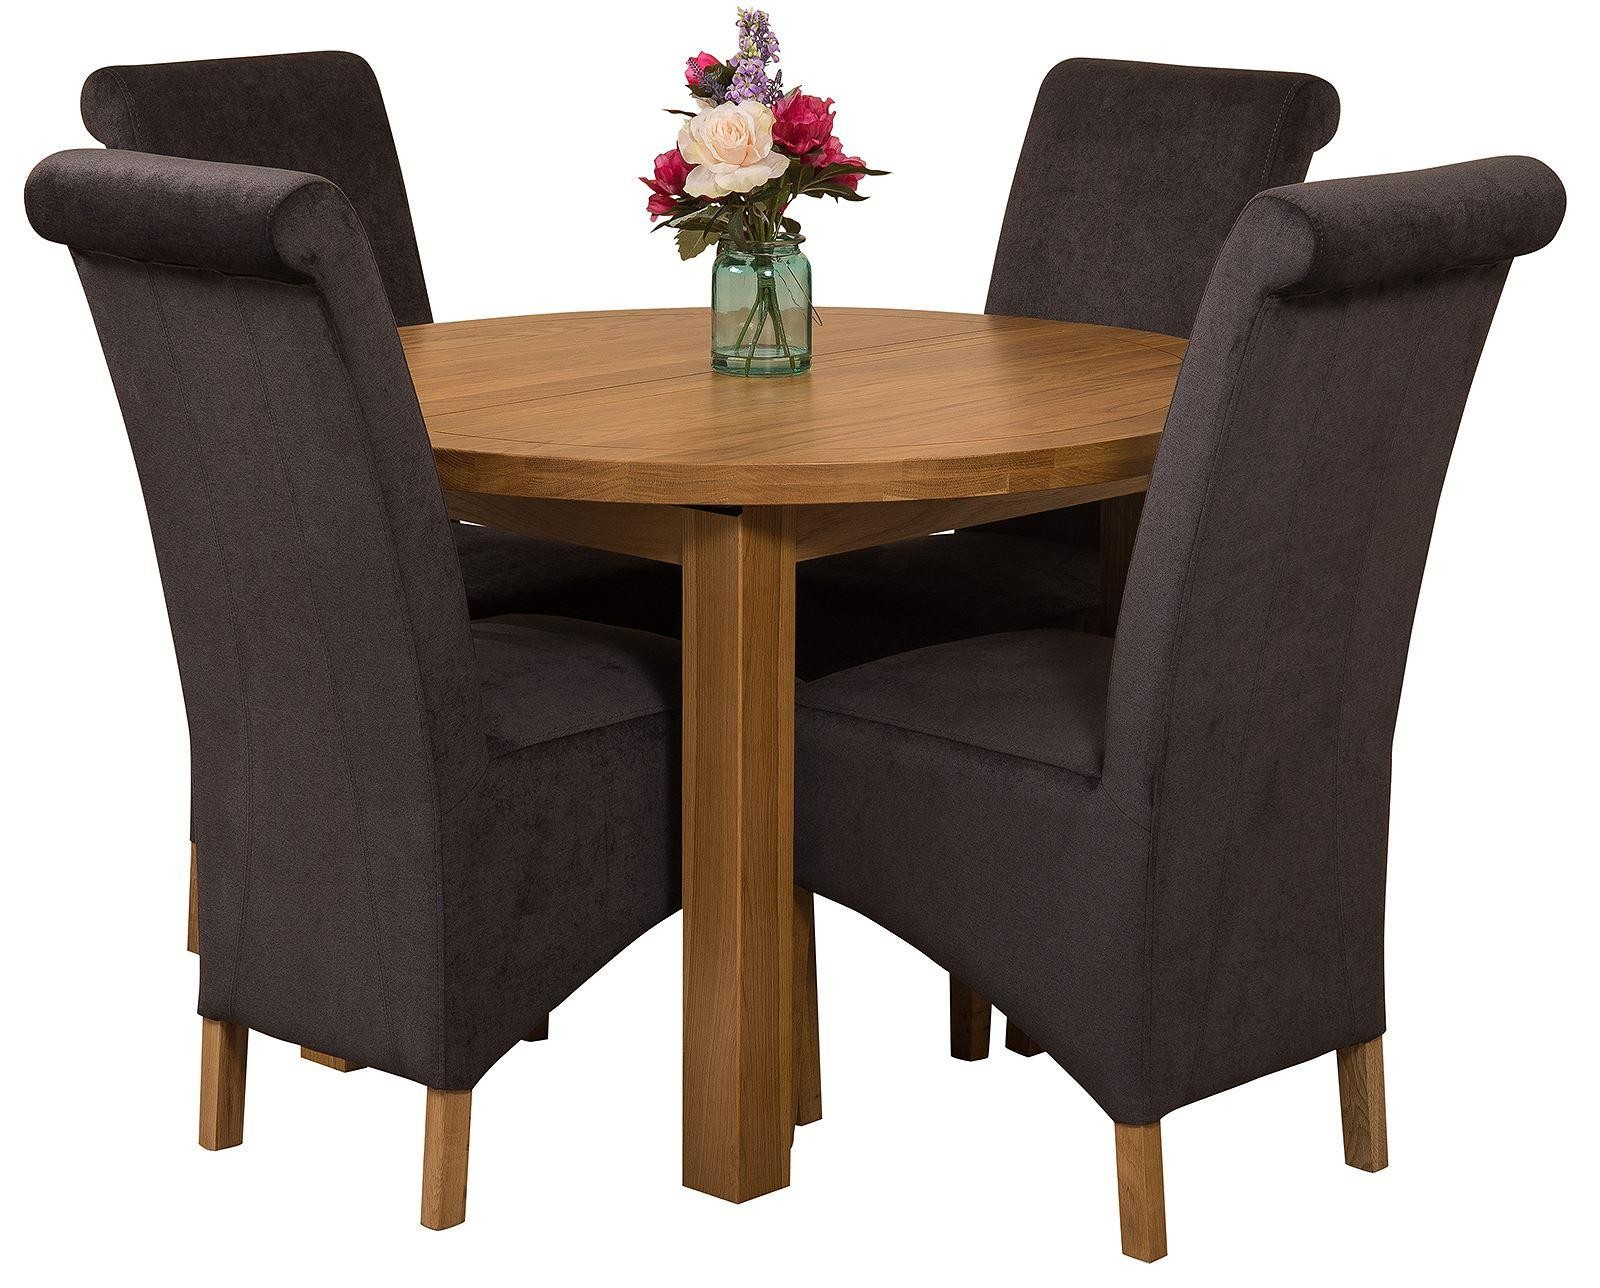 Edmonton Solid Oak Extending Oval Dining Table with 4 Montana  Dining Chairs [Black Fabric]